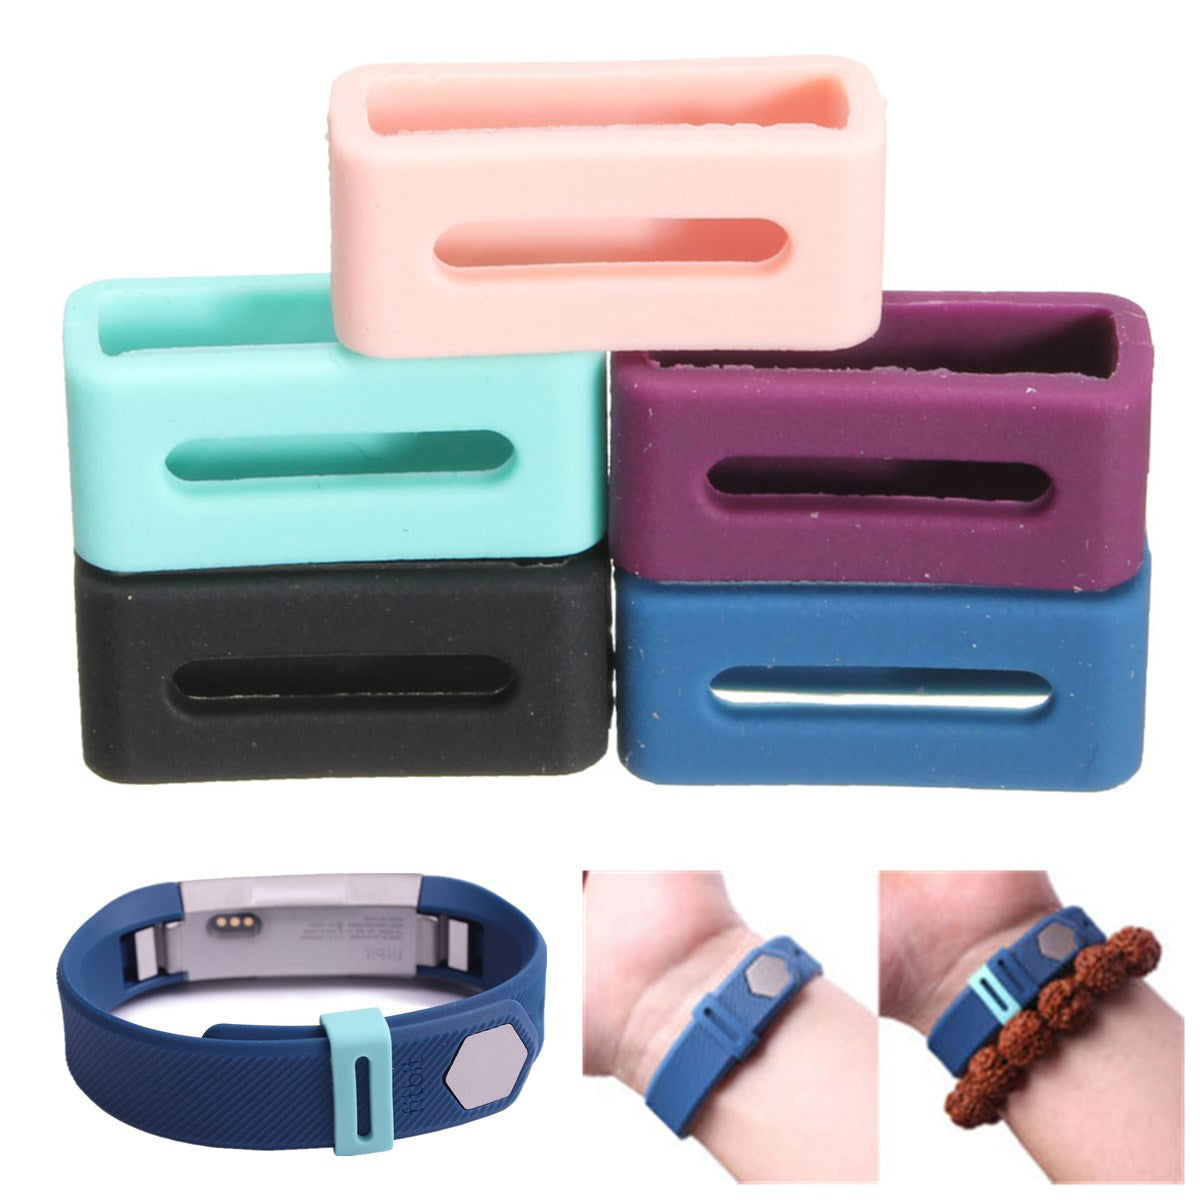 Fitbit Alta Silicone Security Wristband Clasp Ring Loop Fastener For Fitbit Alta